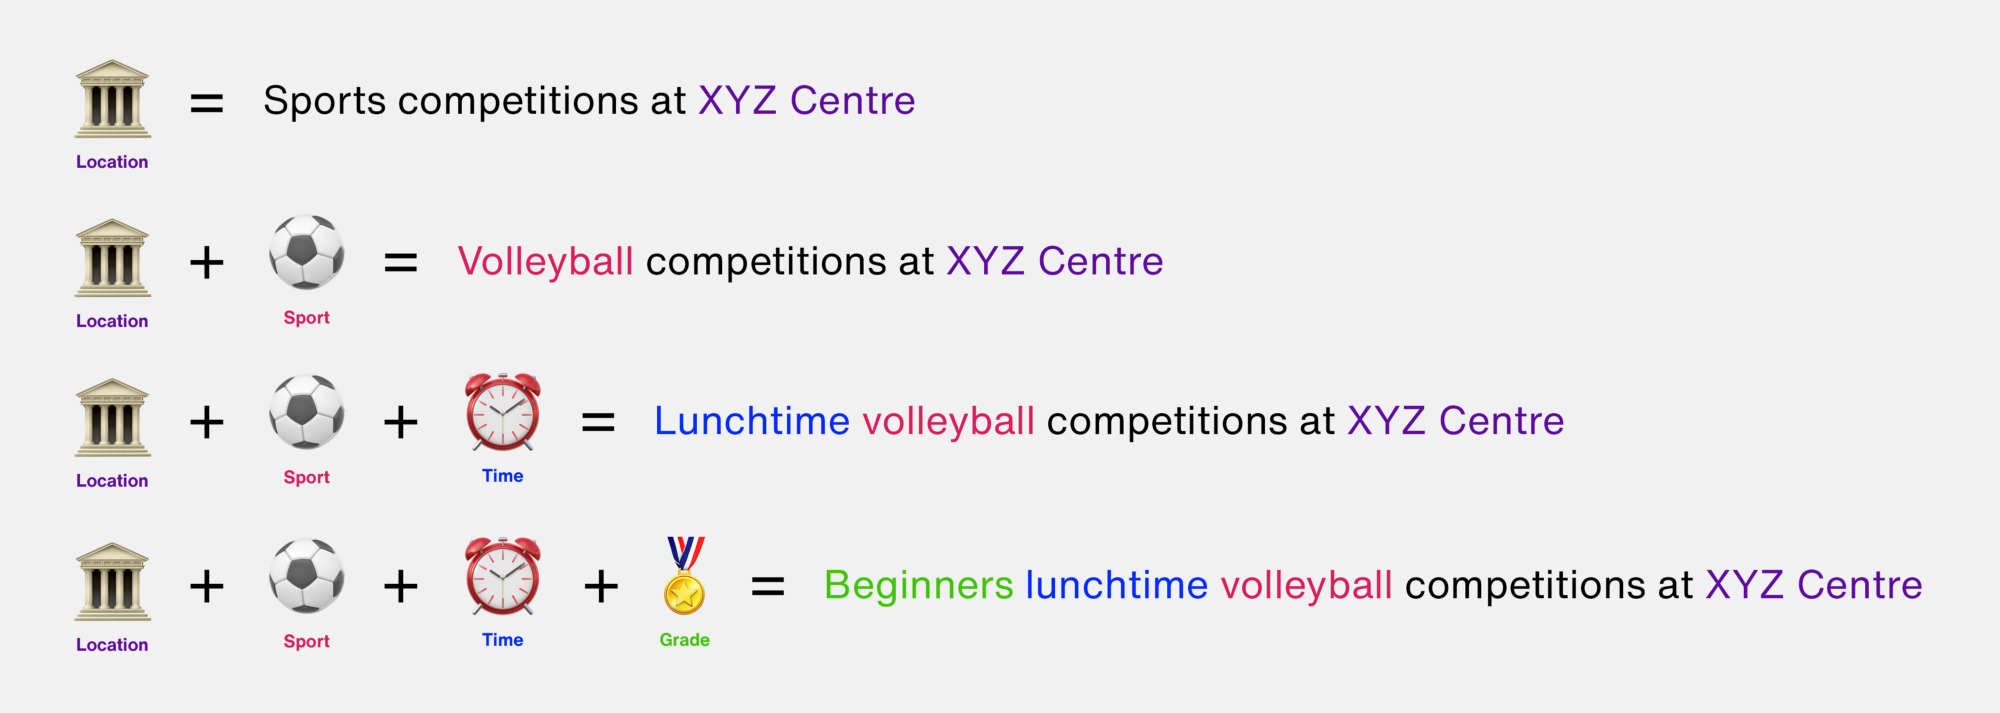 Many different levels of specificity to describe an instance of sports competitions.